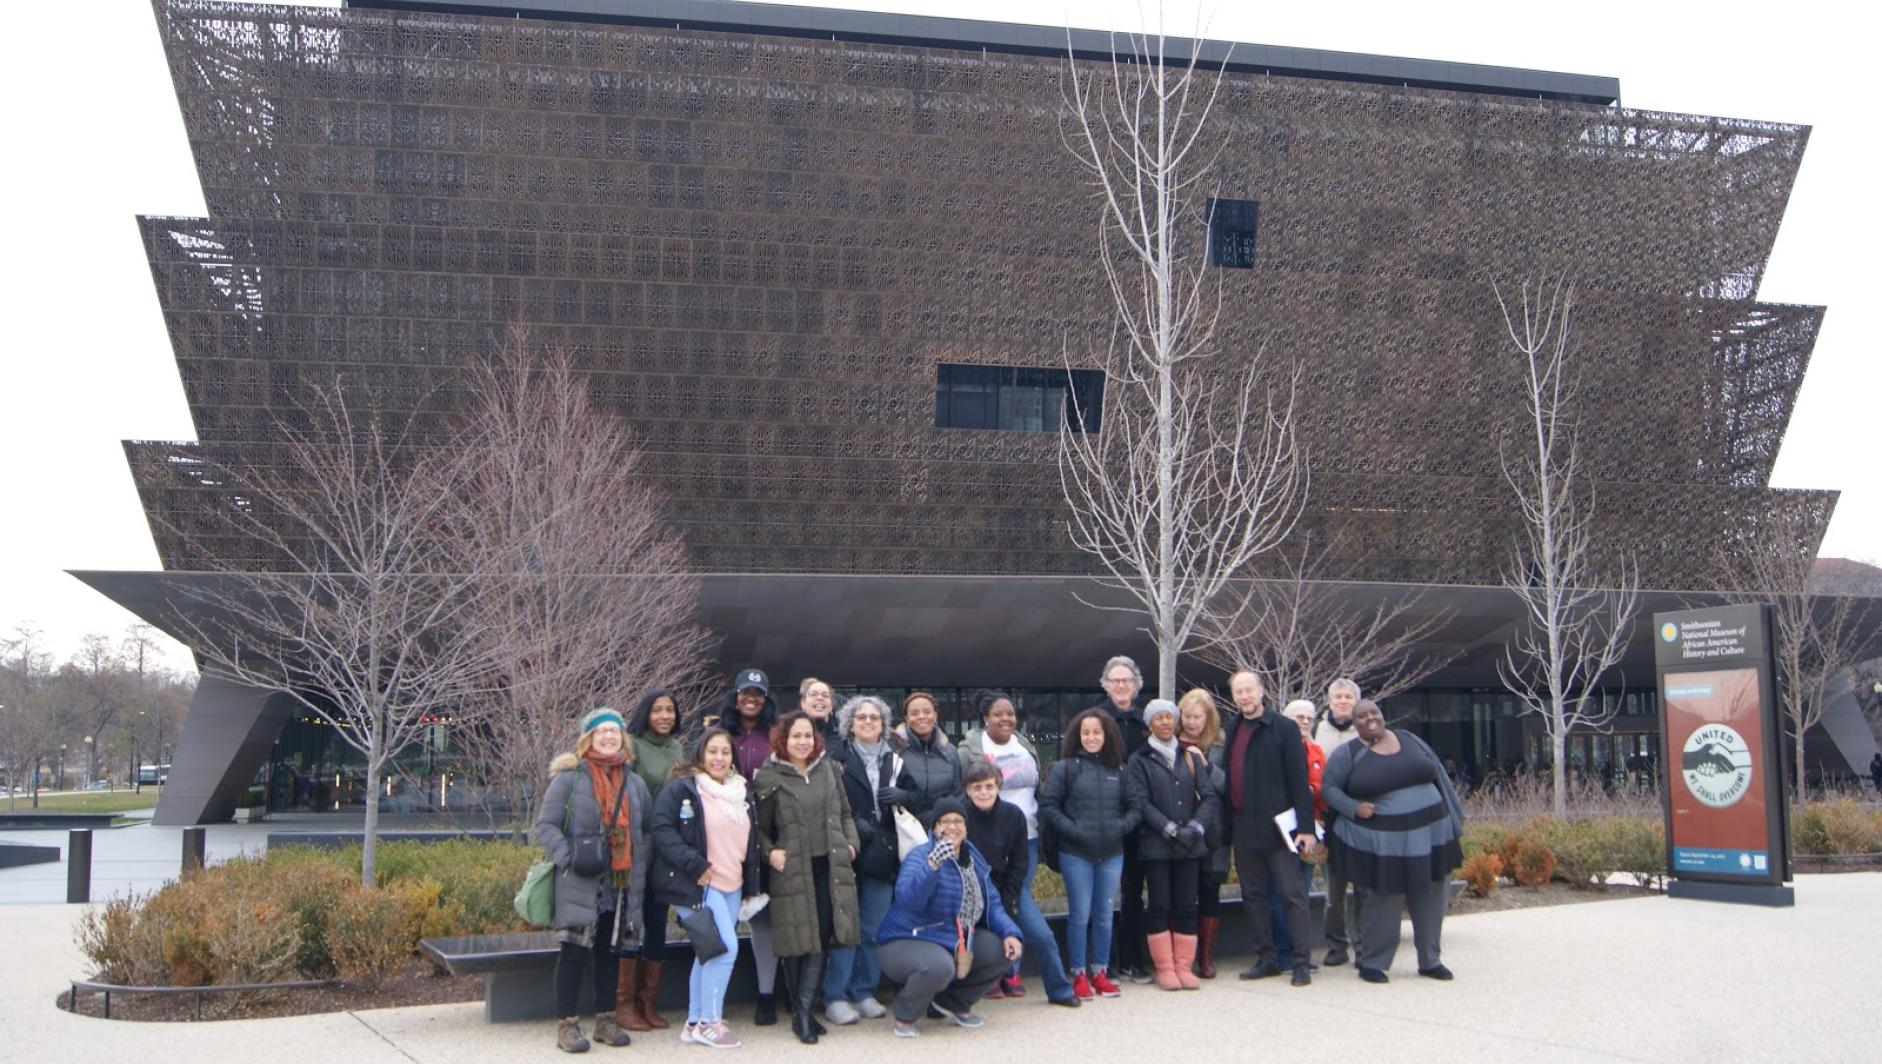 A group of Springfield College students pose outside of the Smithsonian National Museum of African American History and Culture